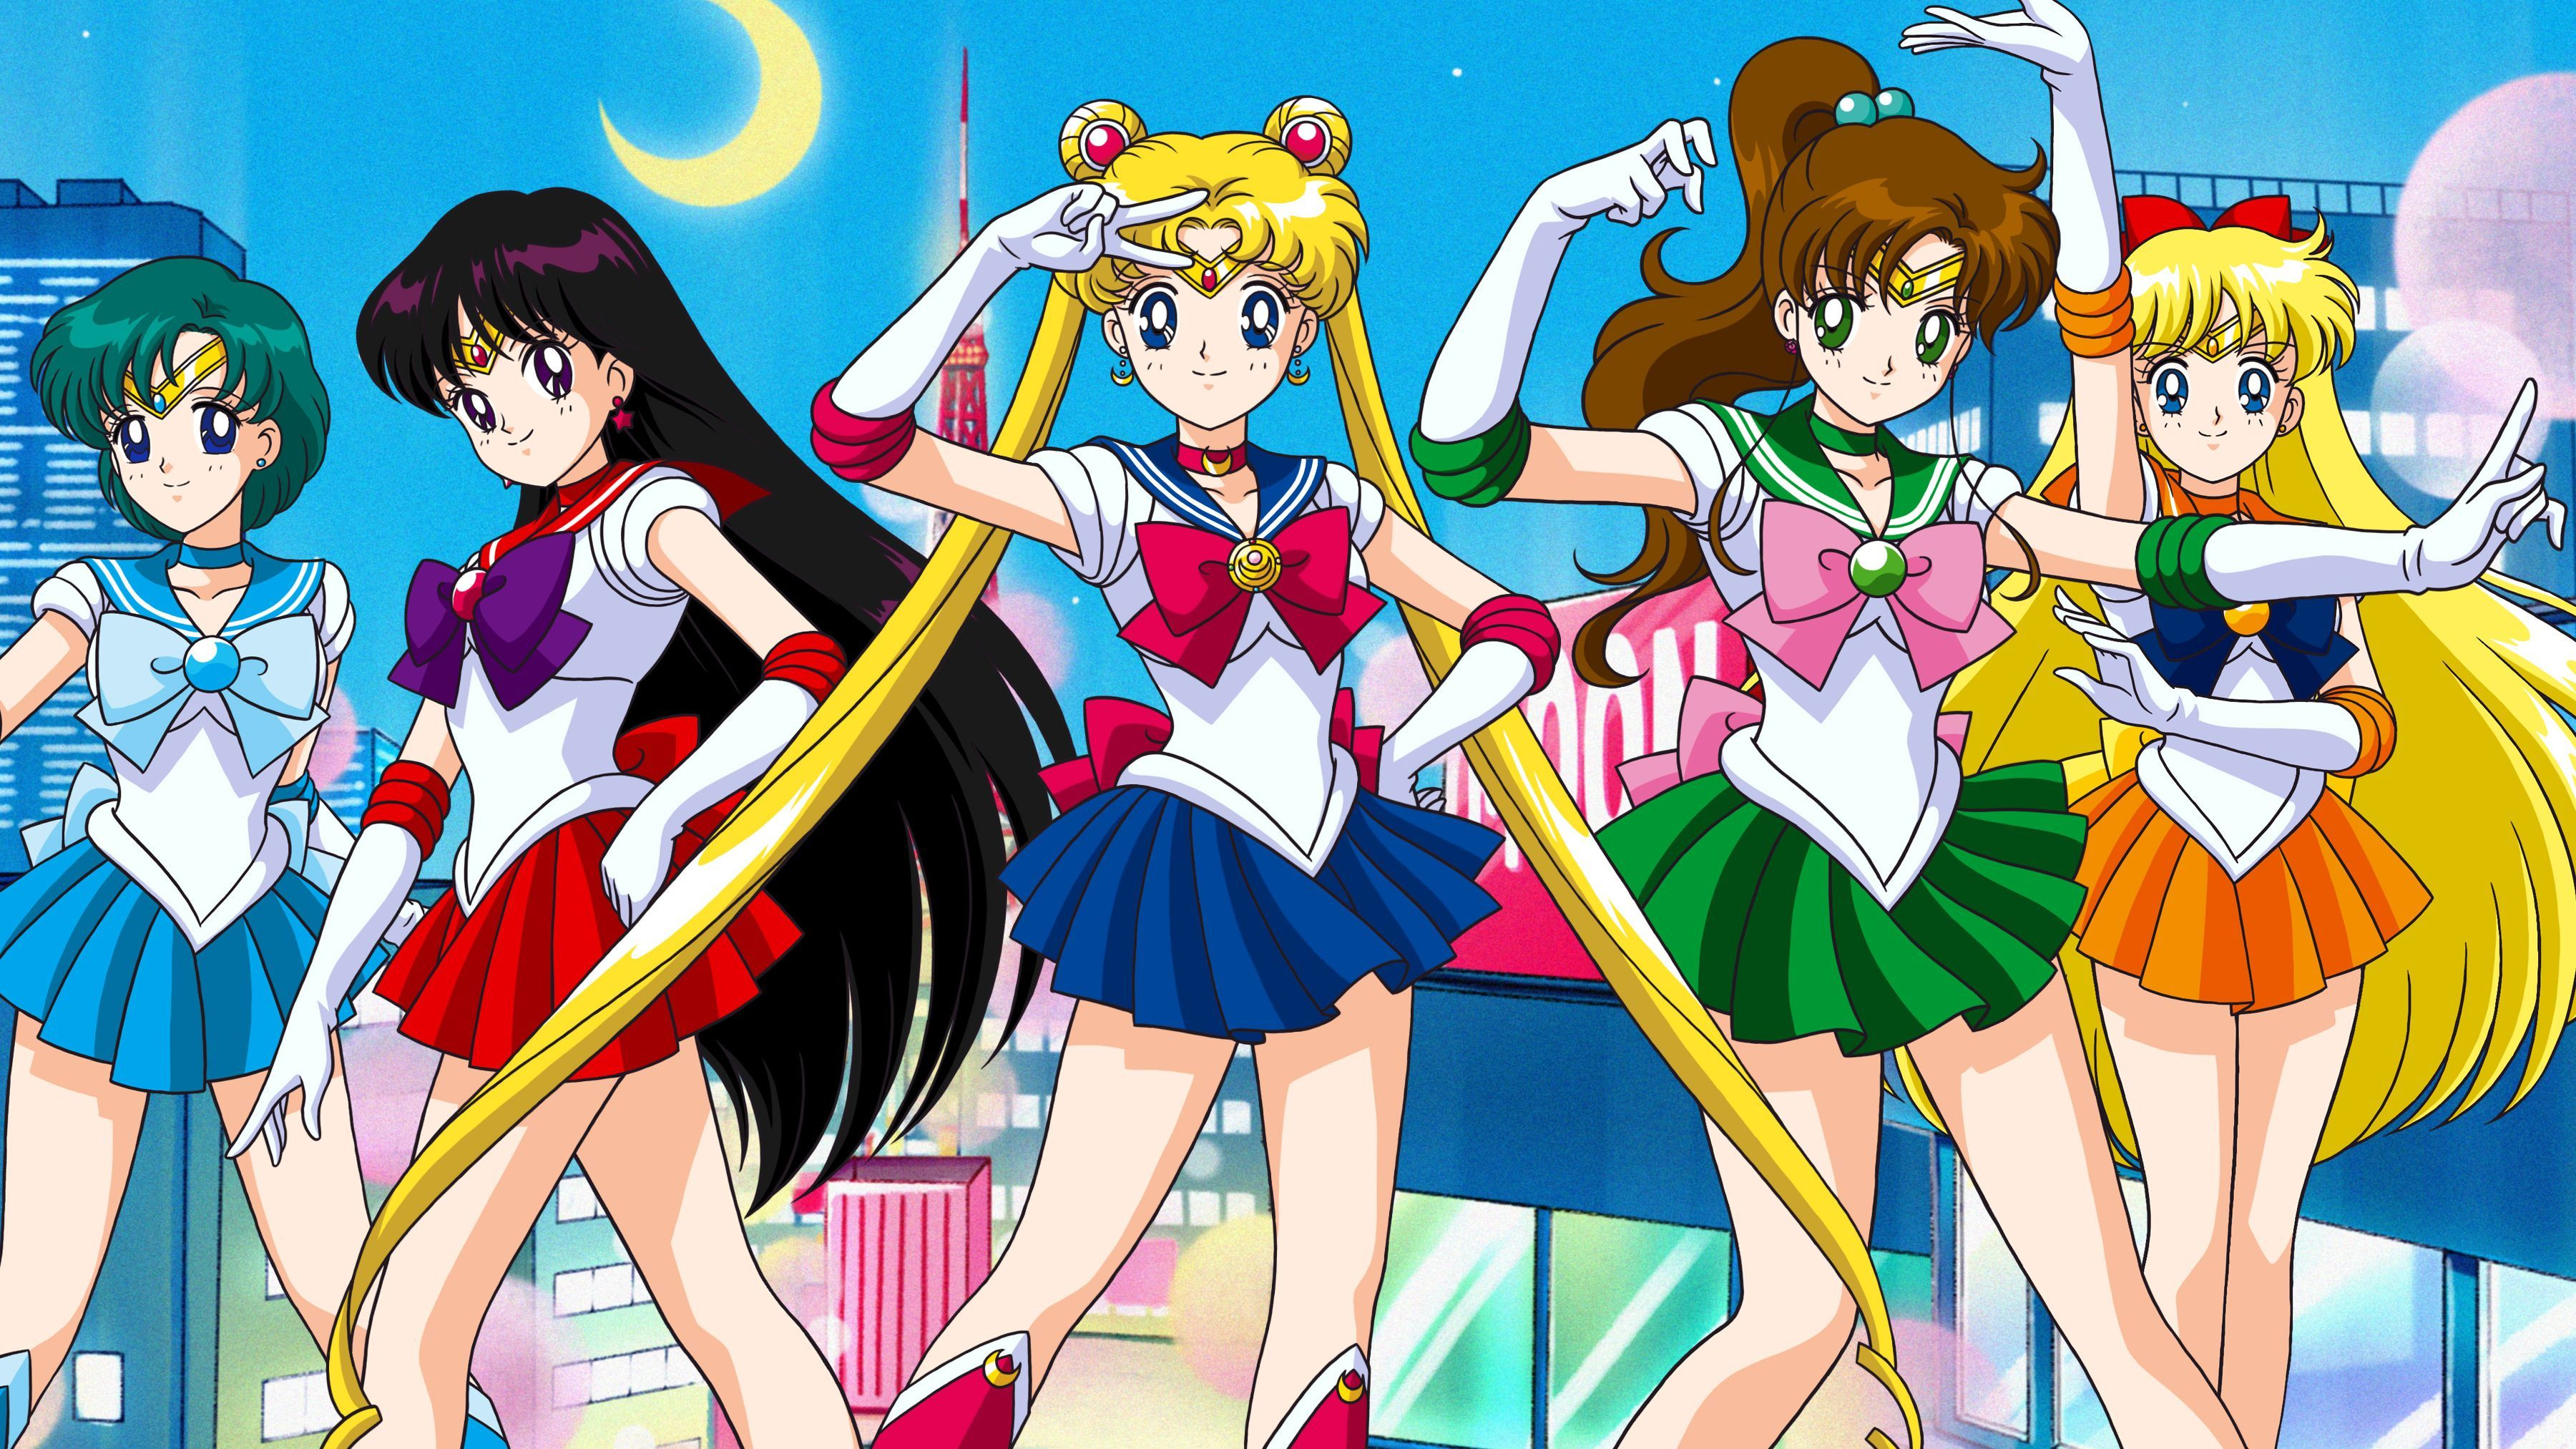 Sailor Moon: 5 Facts About the Iconic Anime